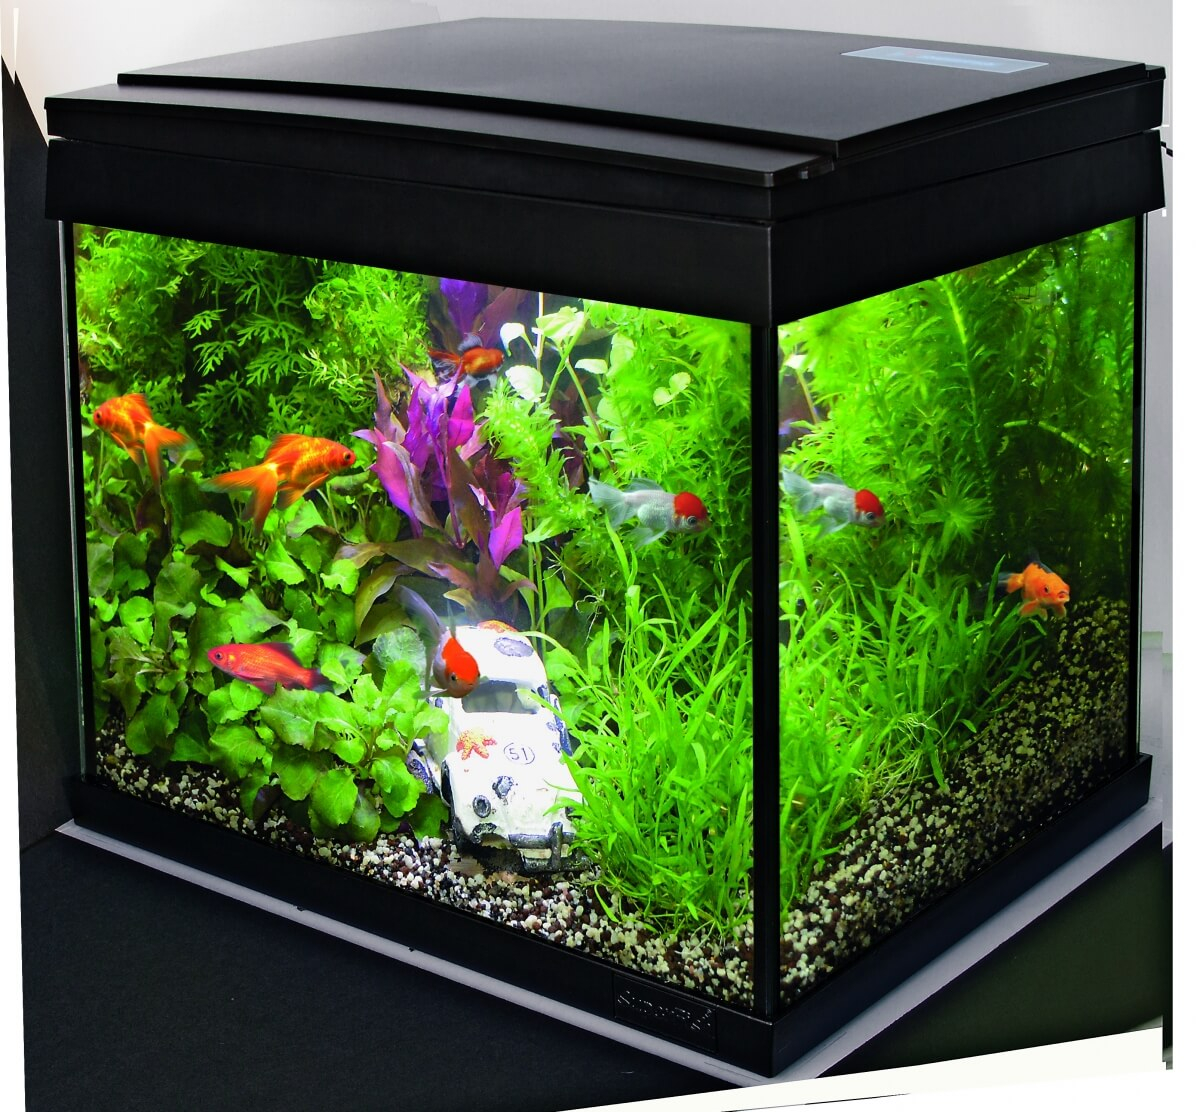 aquarium aqua 20 led kit poisson rouge aquarium et meuble. Black Bedroom Furniture Sets. Home Design Ideas